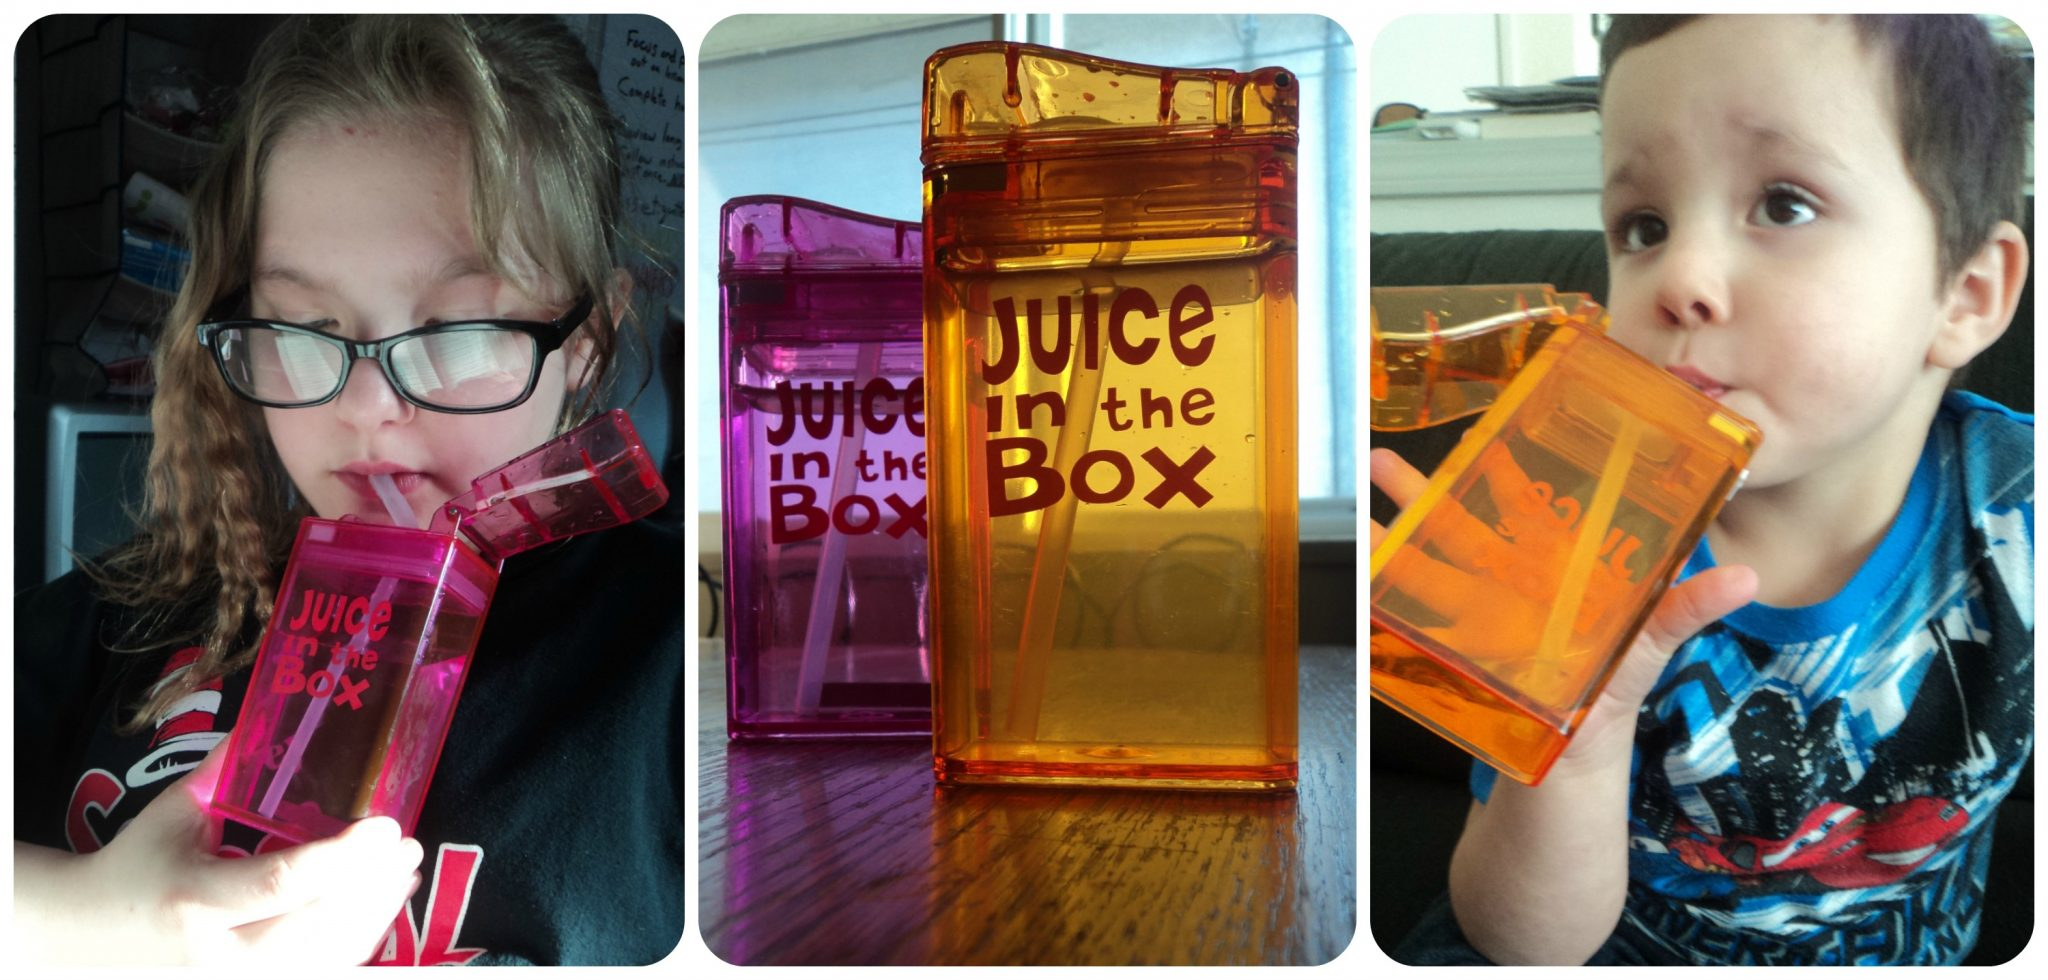 Juice collage